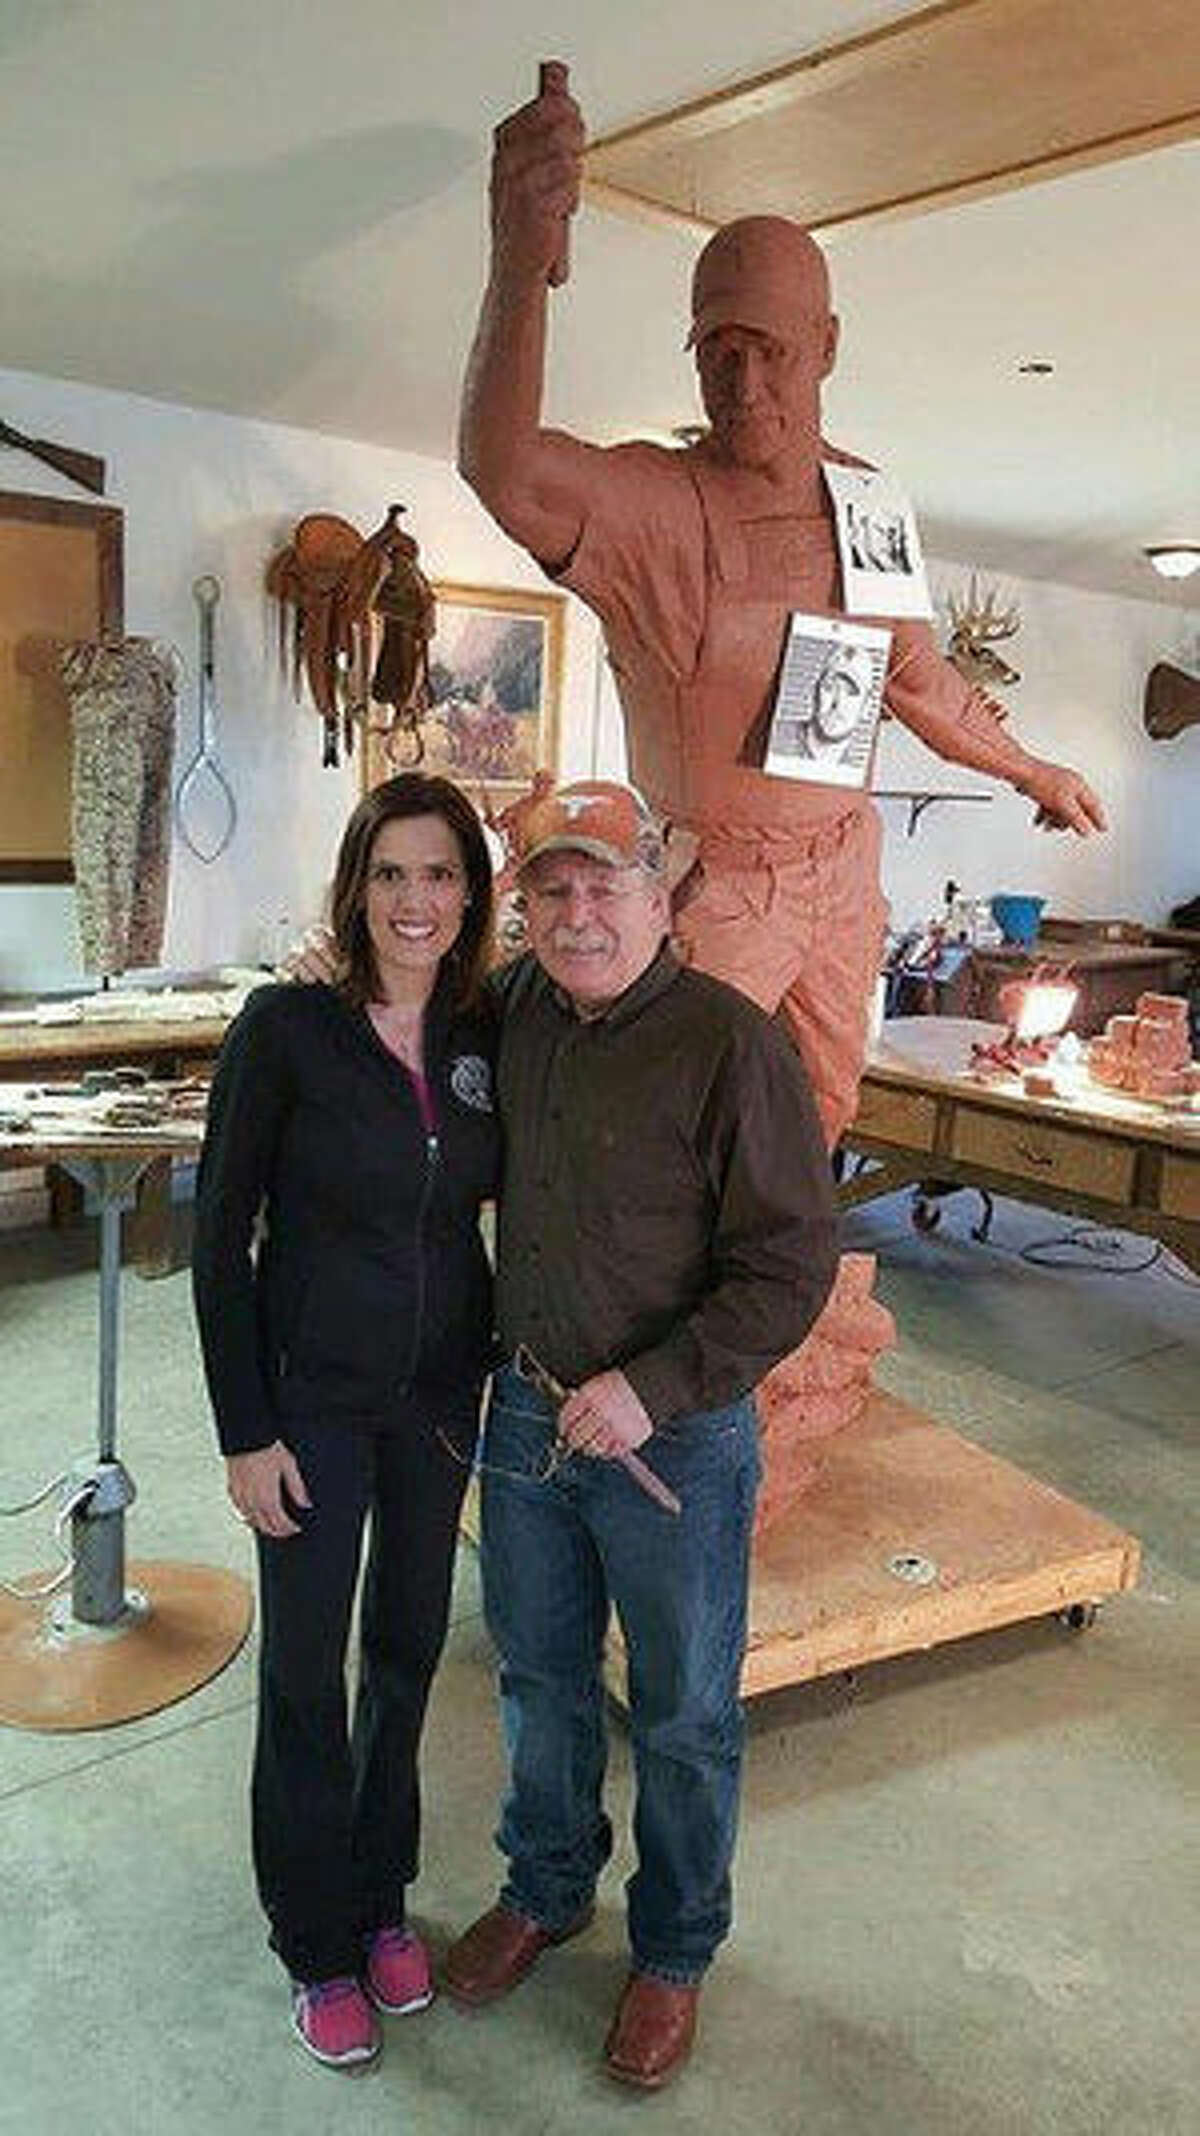 Taya Kyle poses with a statue of her late husband Chris Kyle who was portrayed in the film